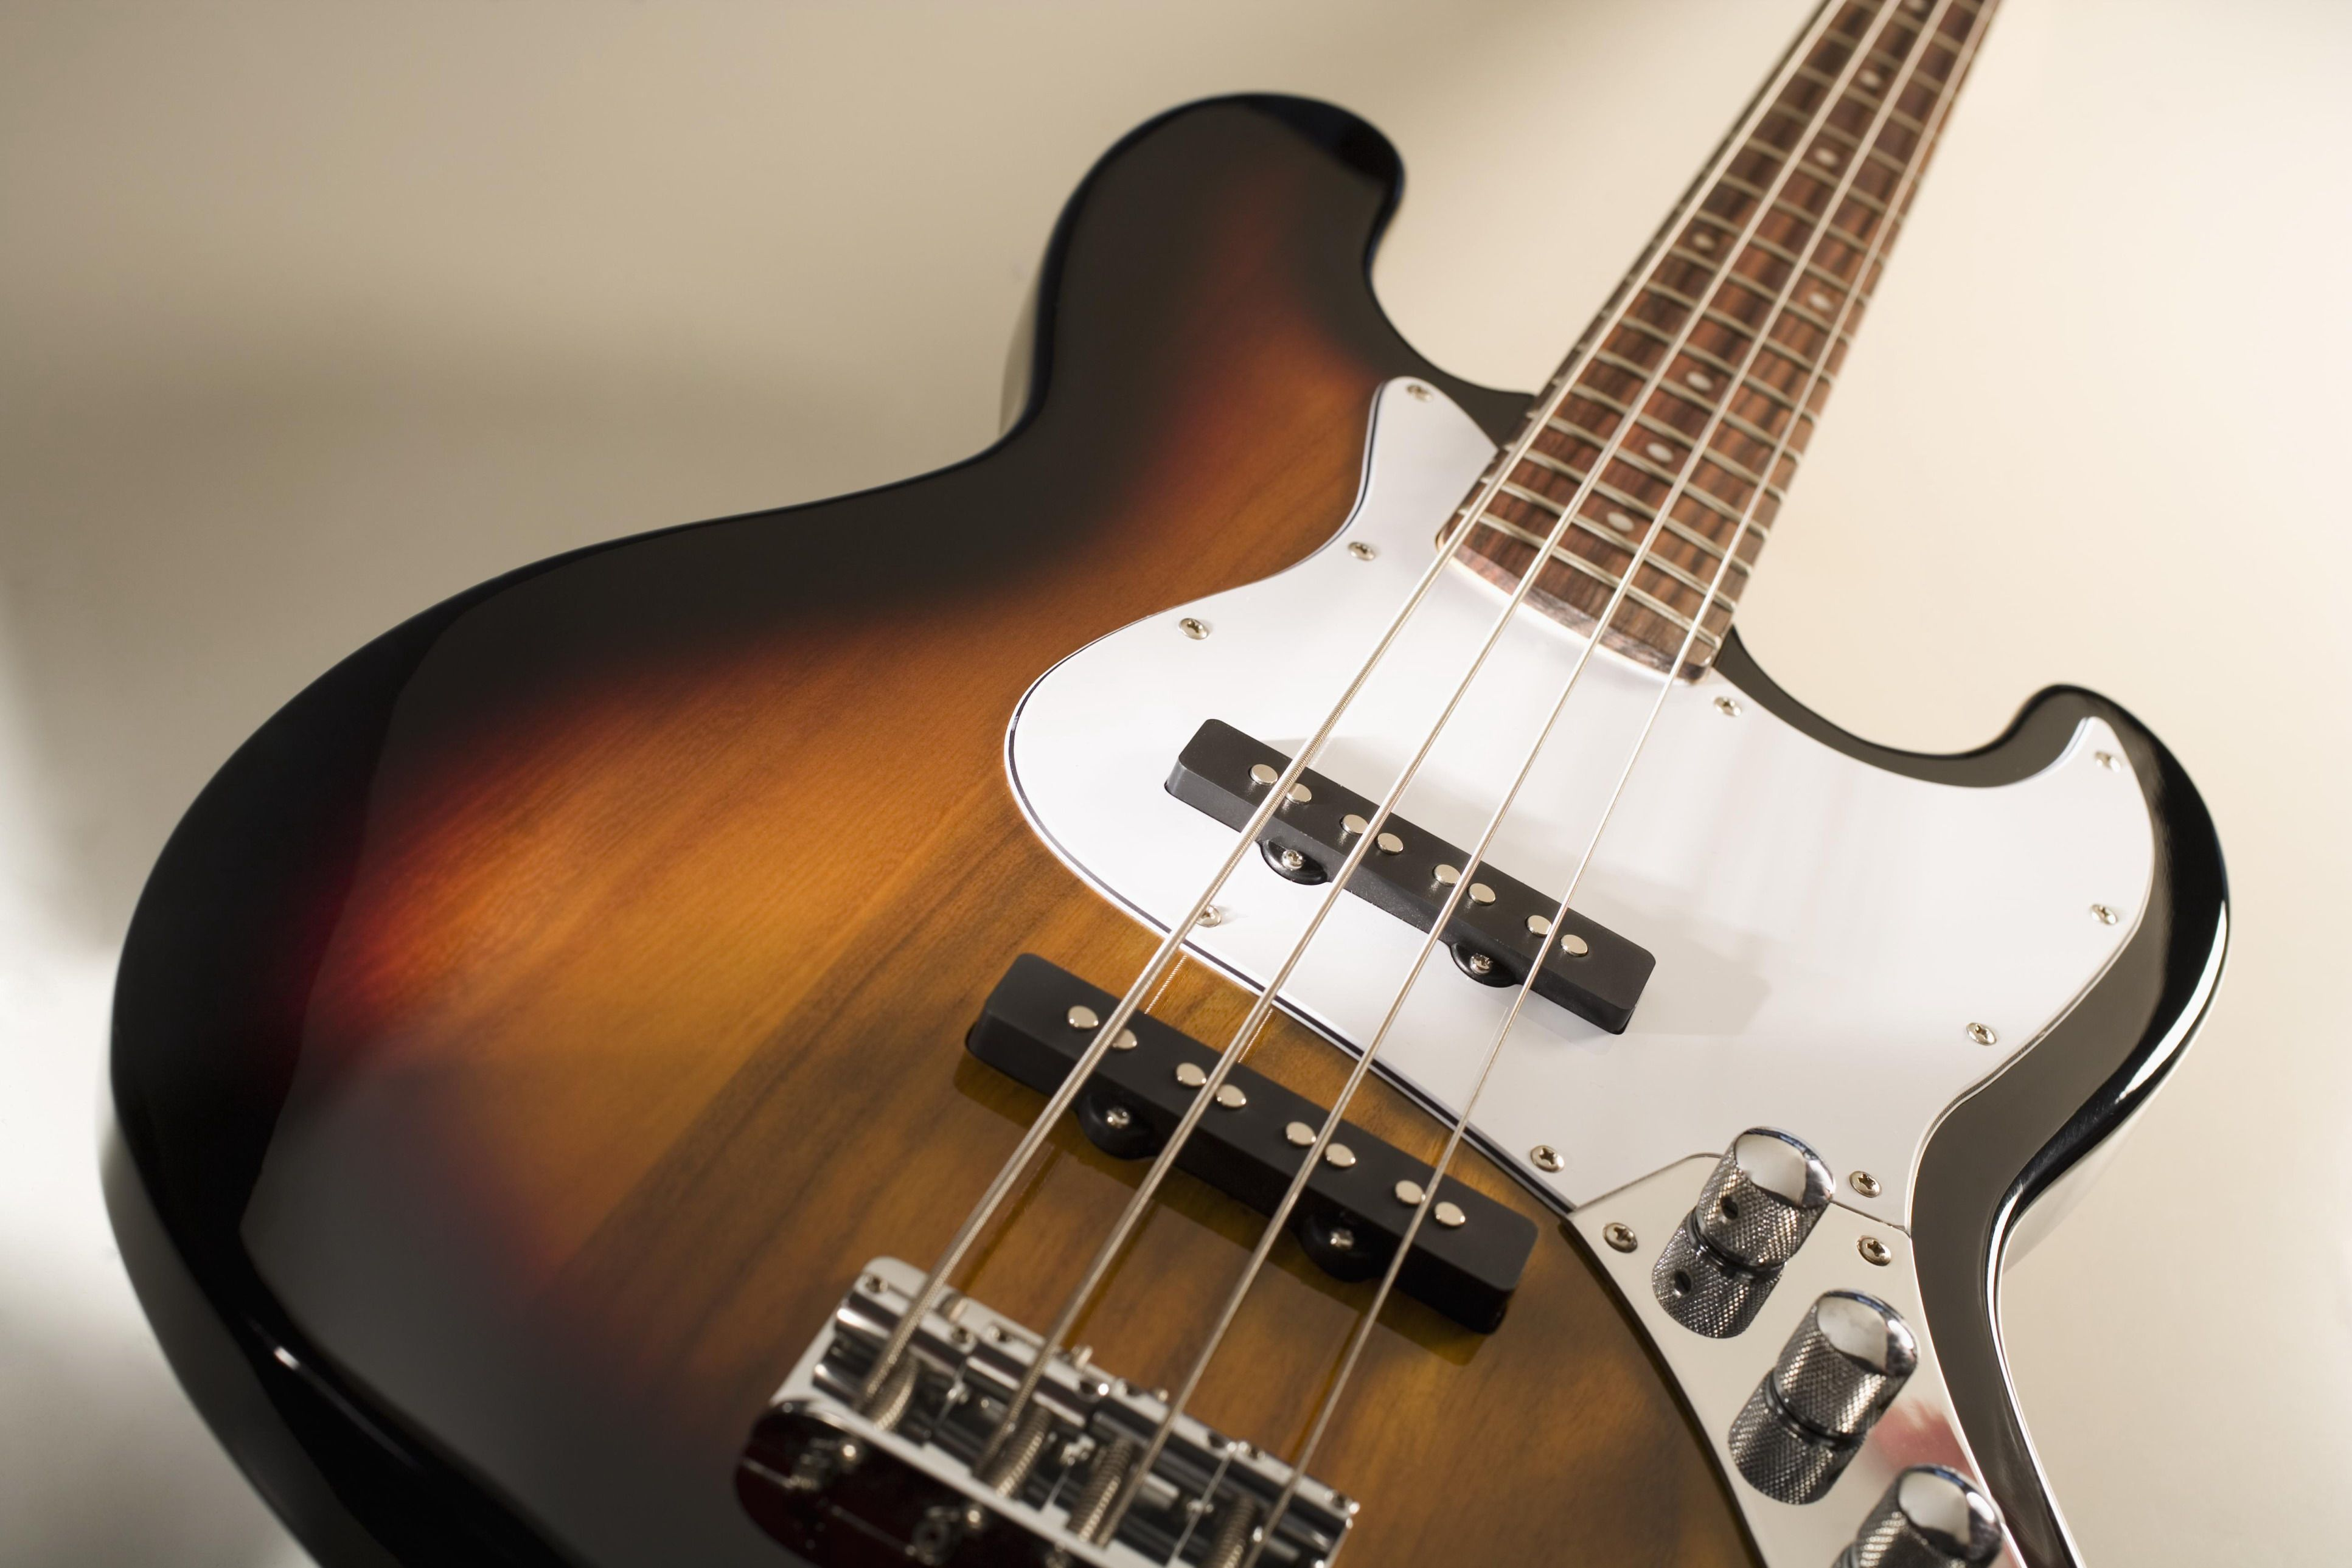 bass neck diagram pa volume control wiring how to read fretboard diagrams